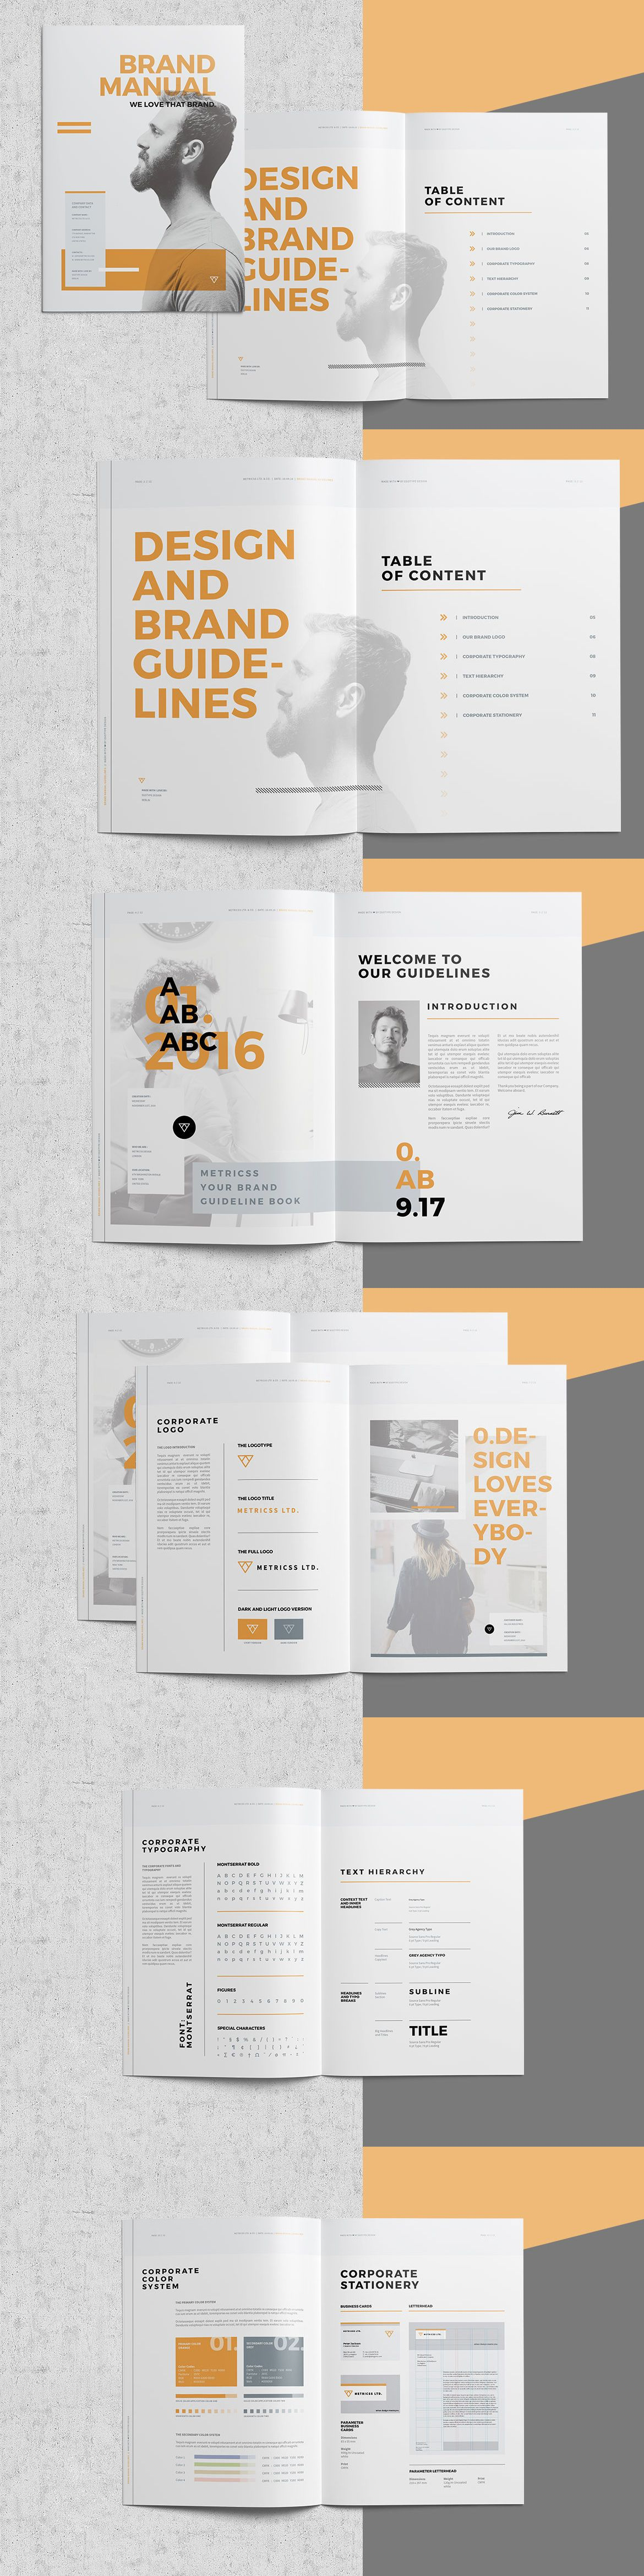 Brand Manual Brochure Template InDesign INDD | Templates | Pinterest ...